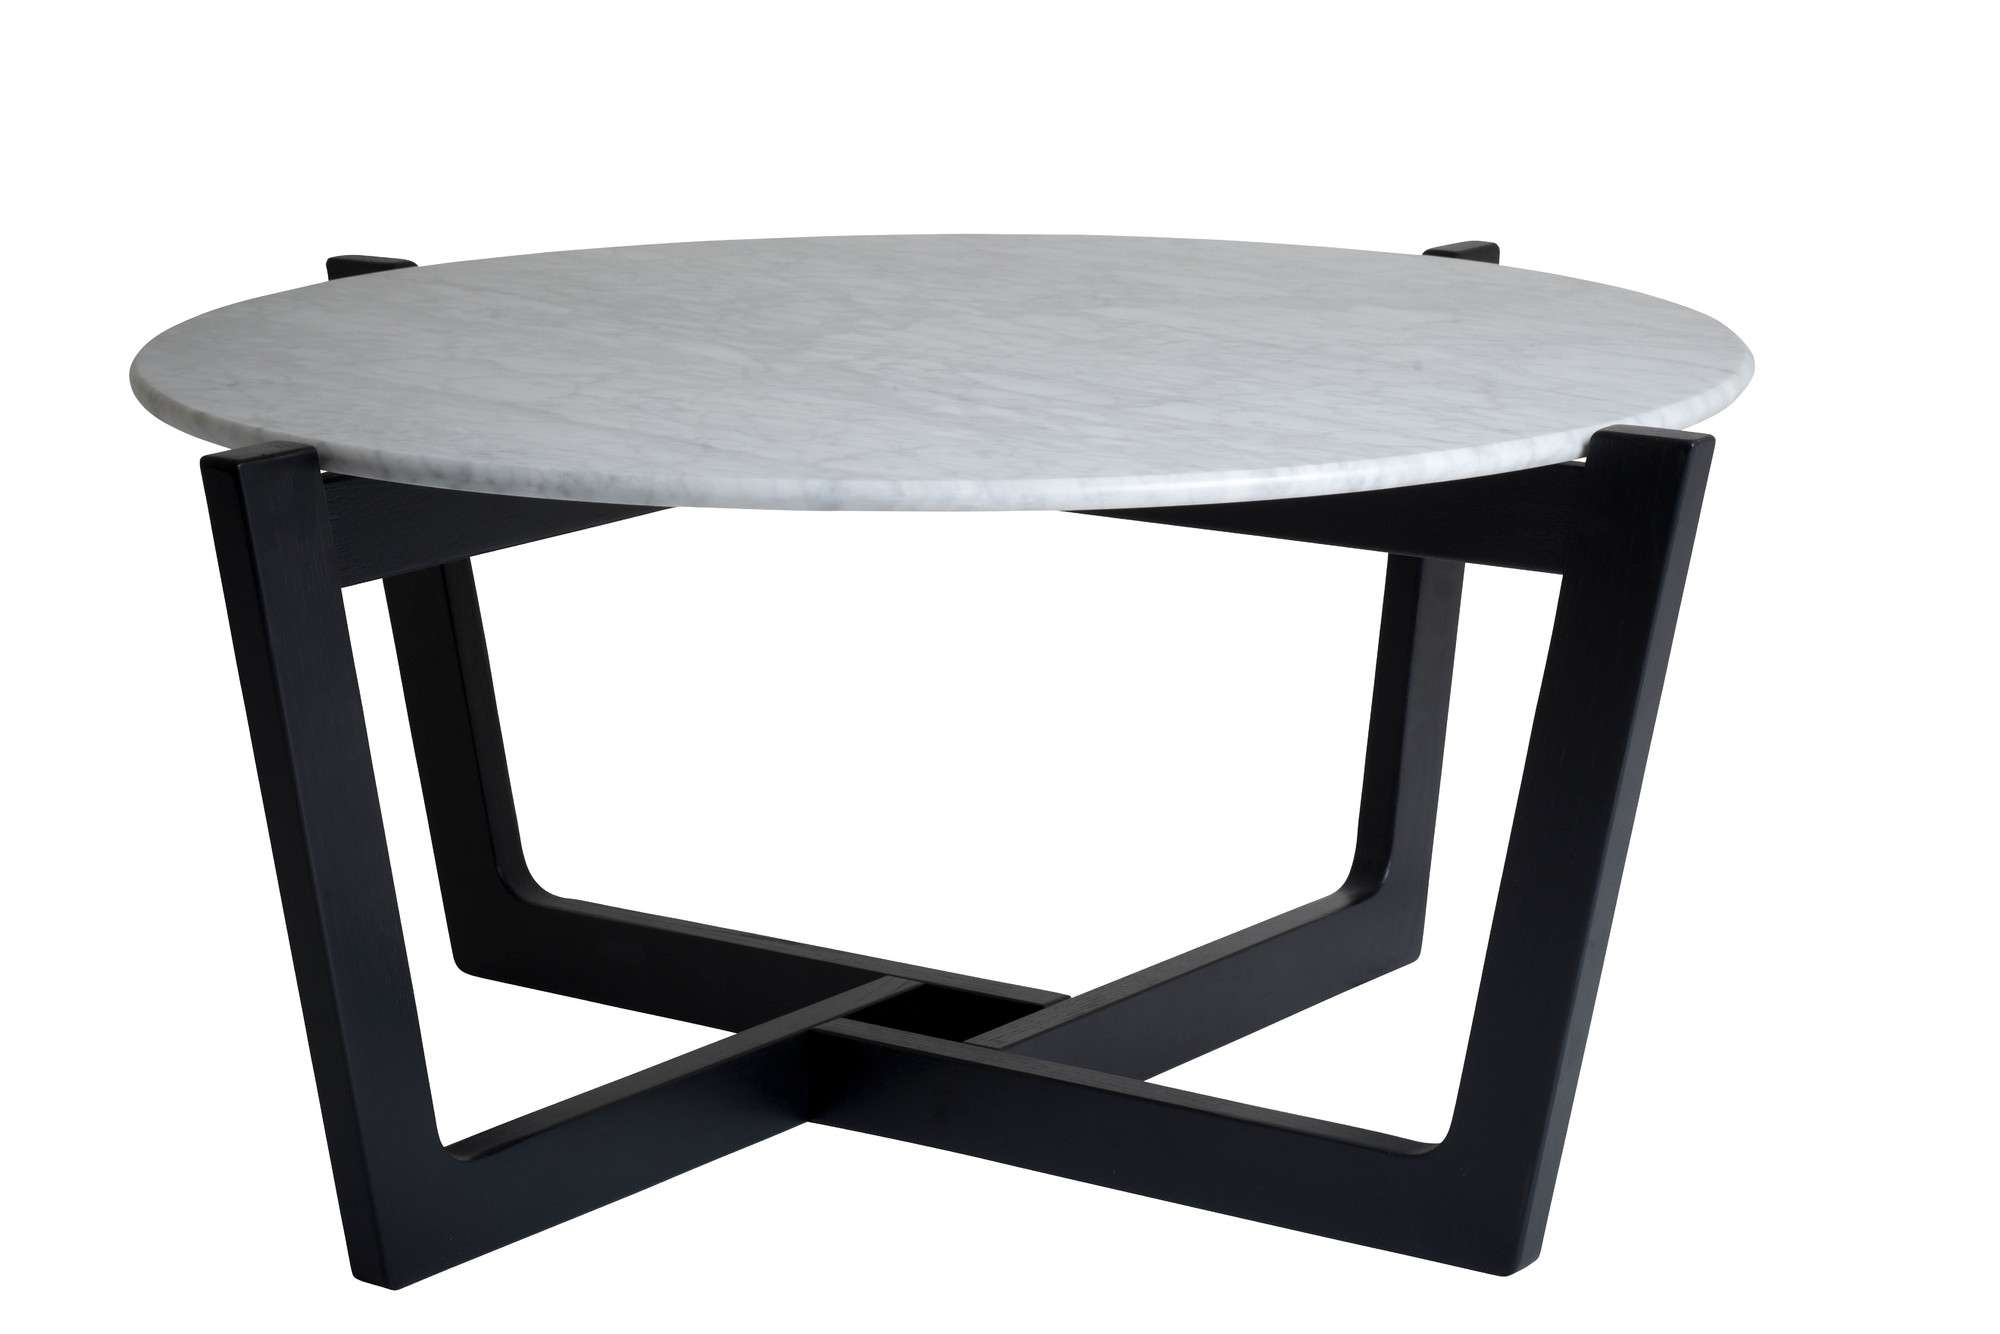 Coffee Tables : Black And Glass Coffee Table Malmsta Brown Cm Ikea Throughout Current Oval Black Glass Coffee Tables (View 6 of 20)